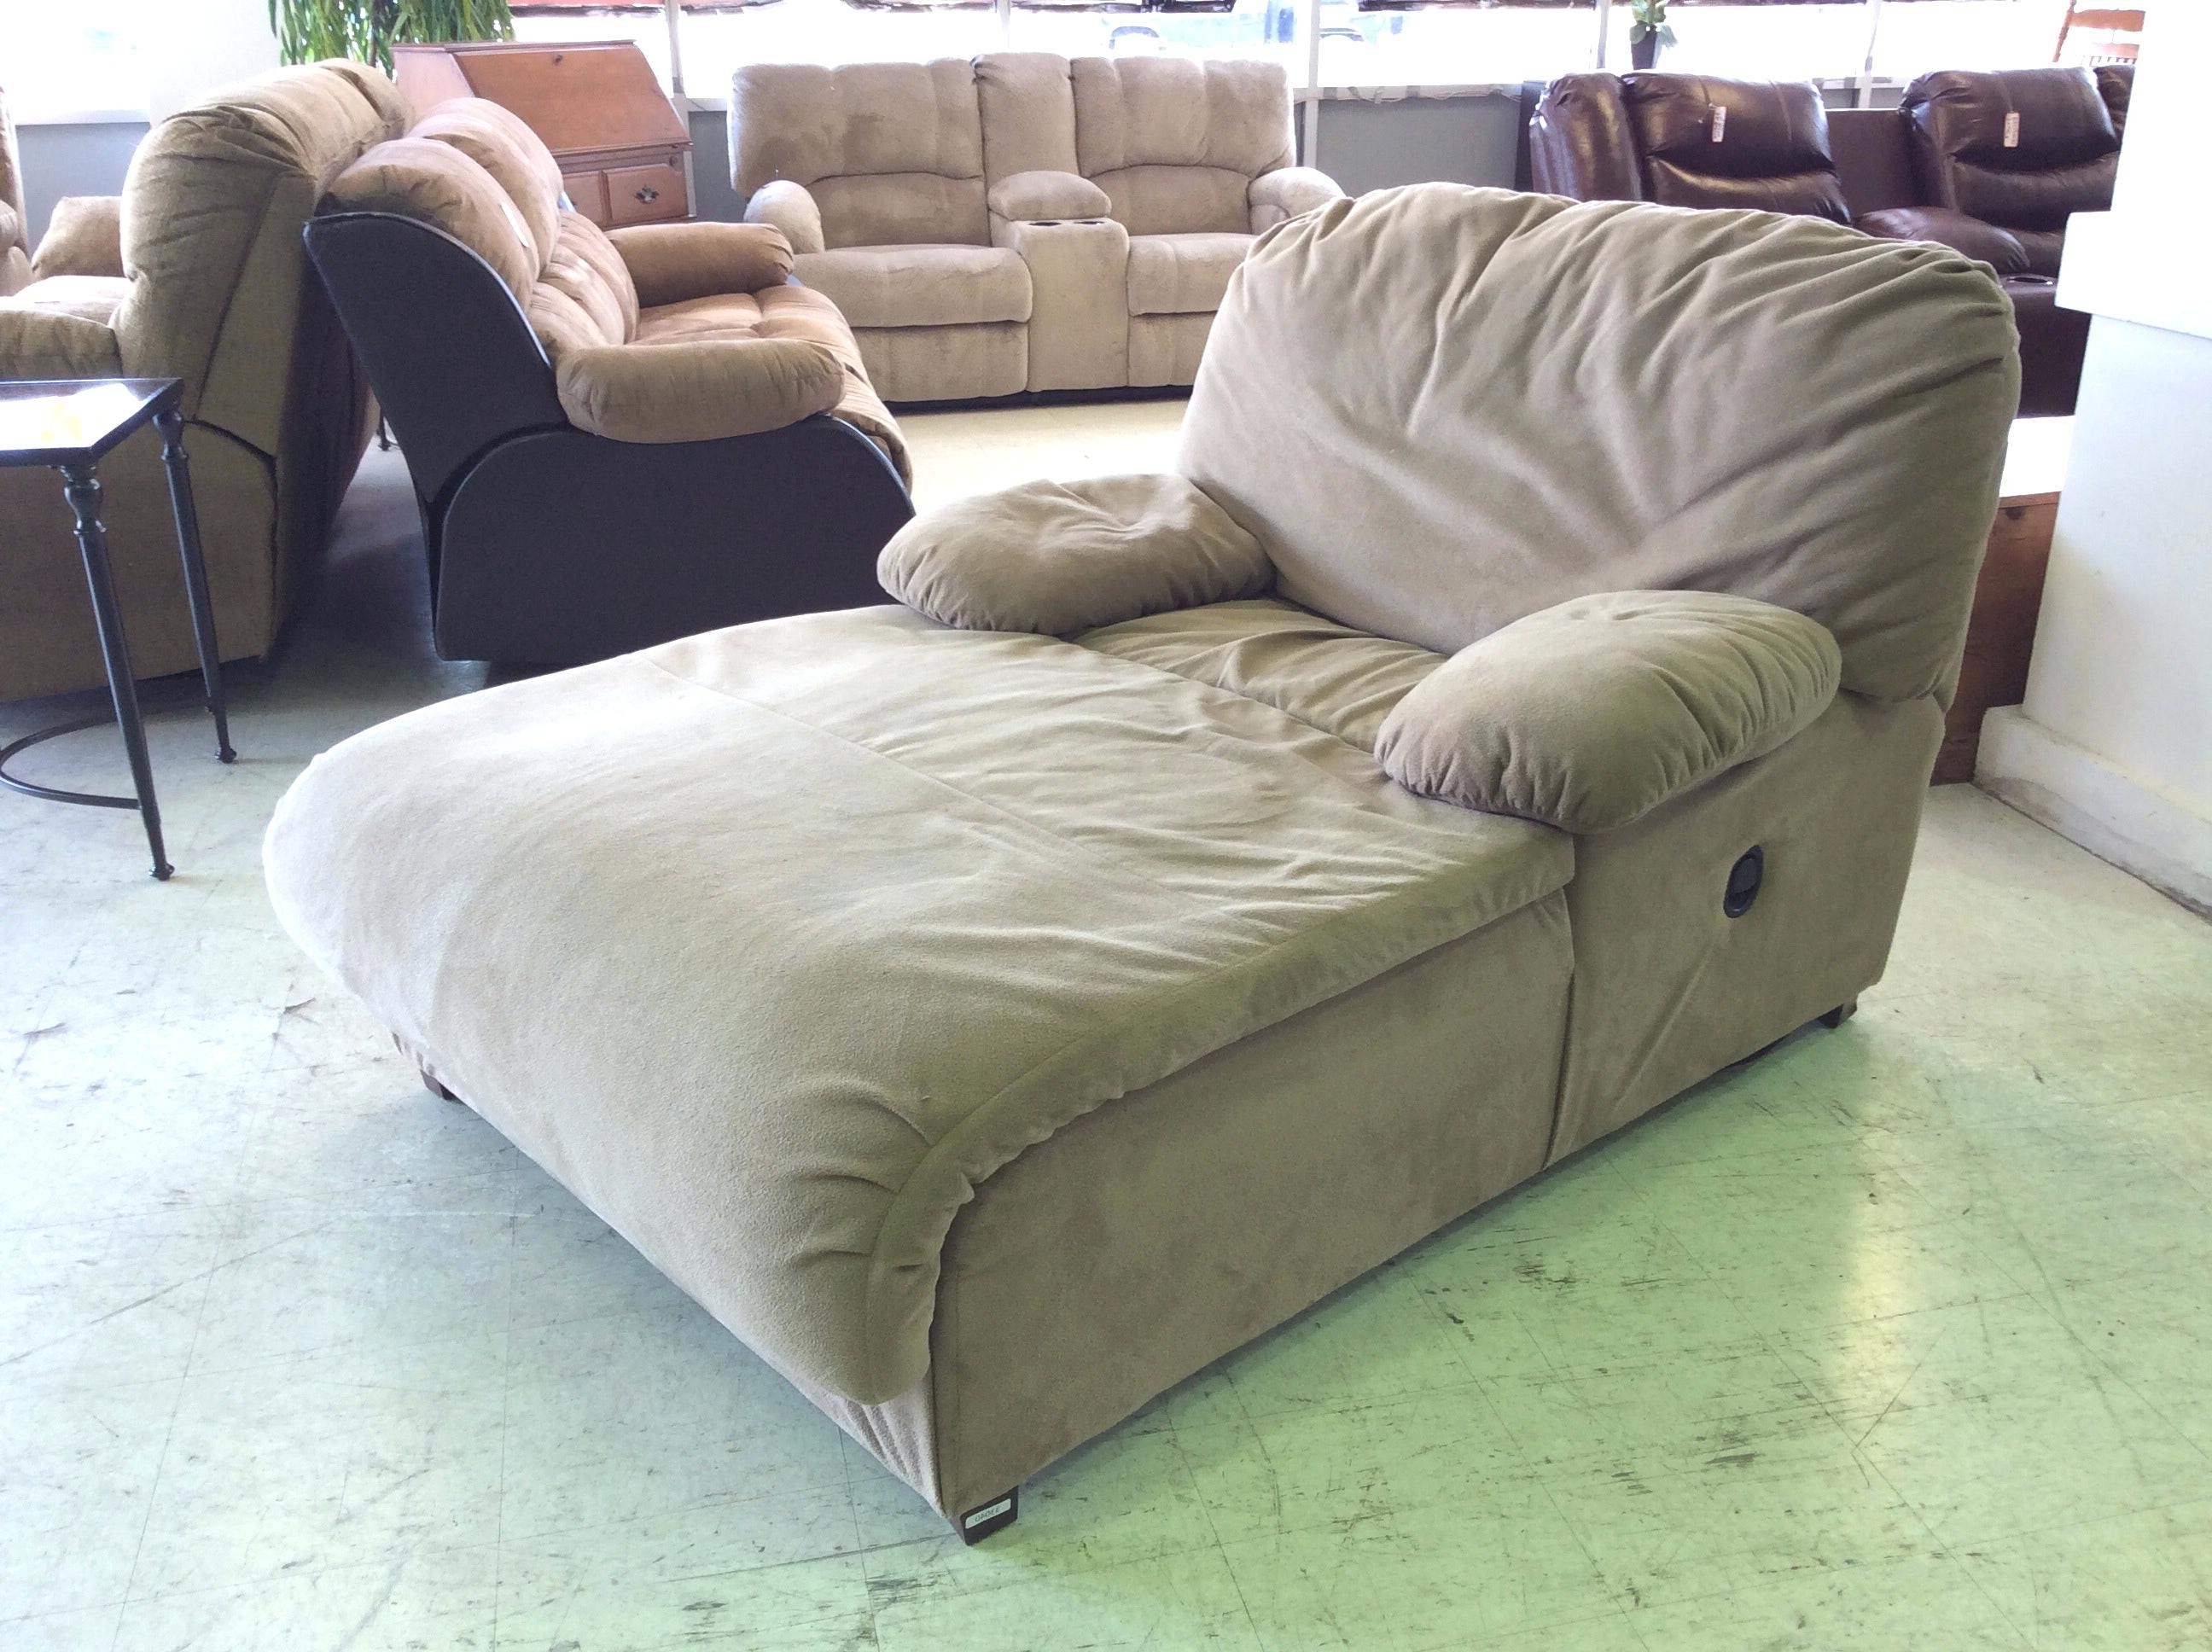 Covers For Chaise Lounge Chair Pertaining To Famous Indoor Chaise Lounge Chair Covers • Chair Covers Ideas (View 5 of 15)